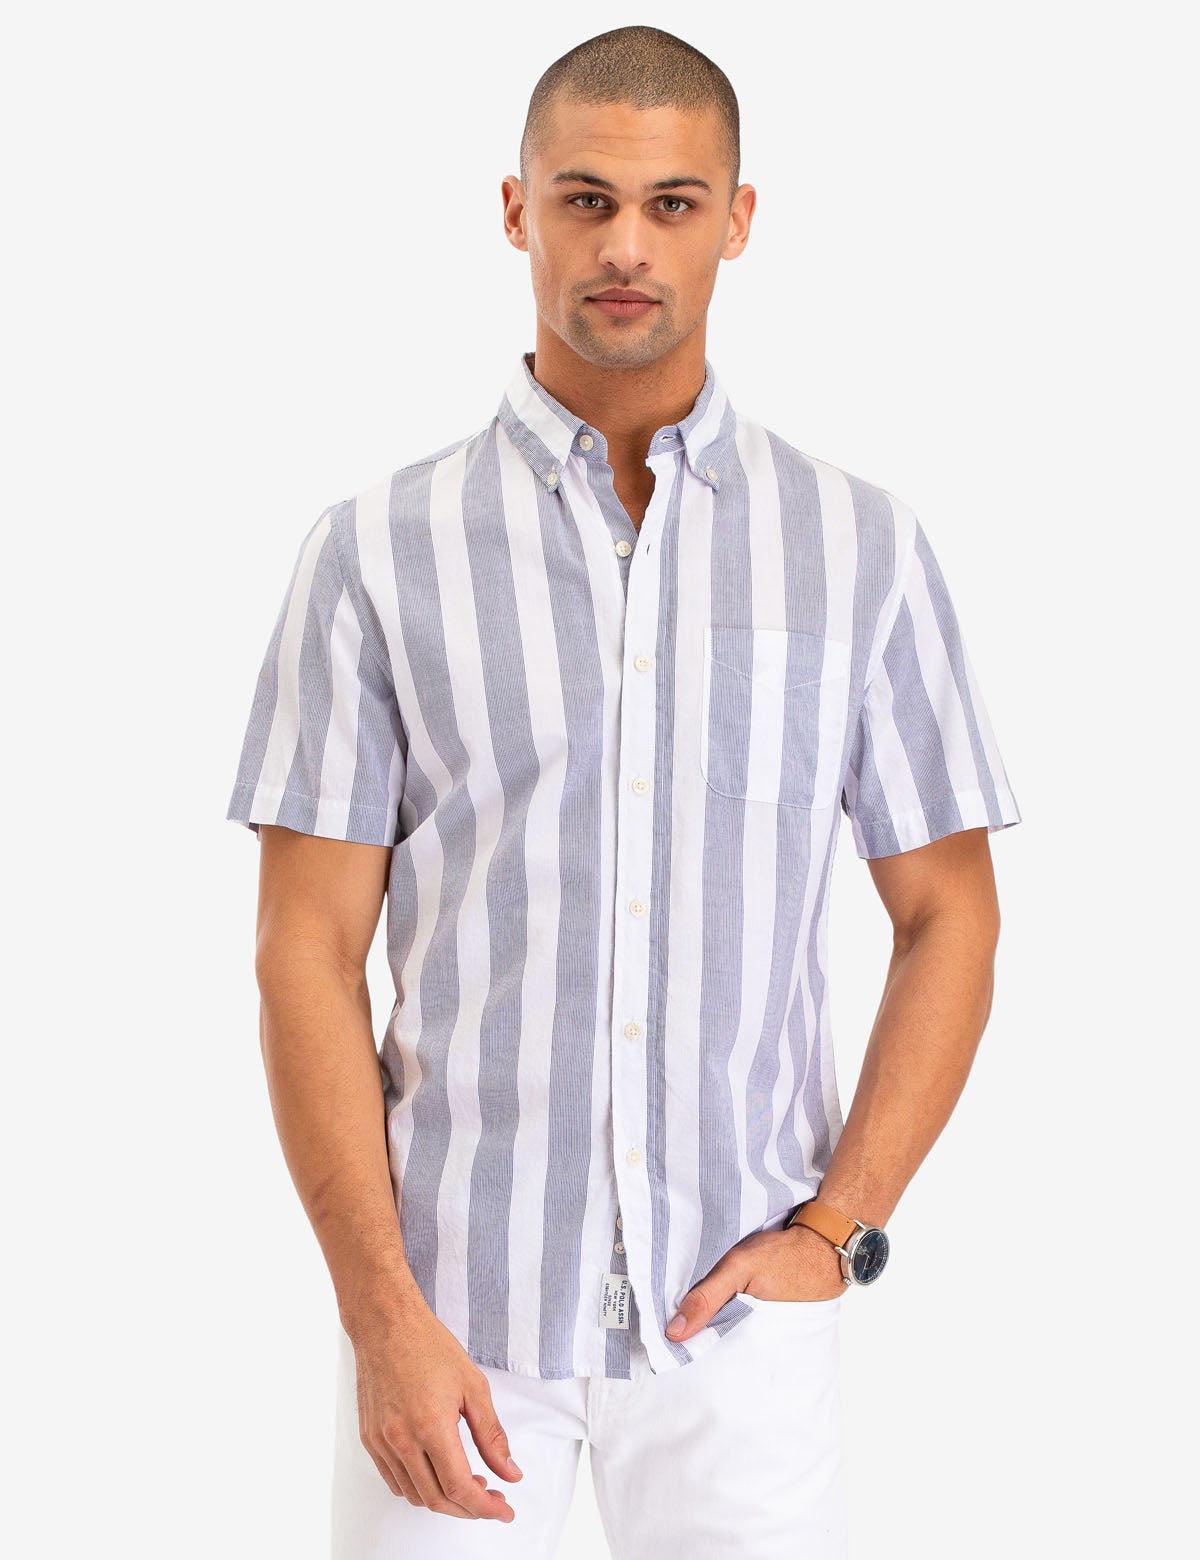 VERTICAL RETRO STRIPE SHORT SLEEVE SHIRT - U.S. Polo Assn.